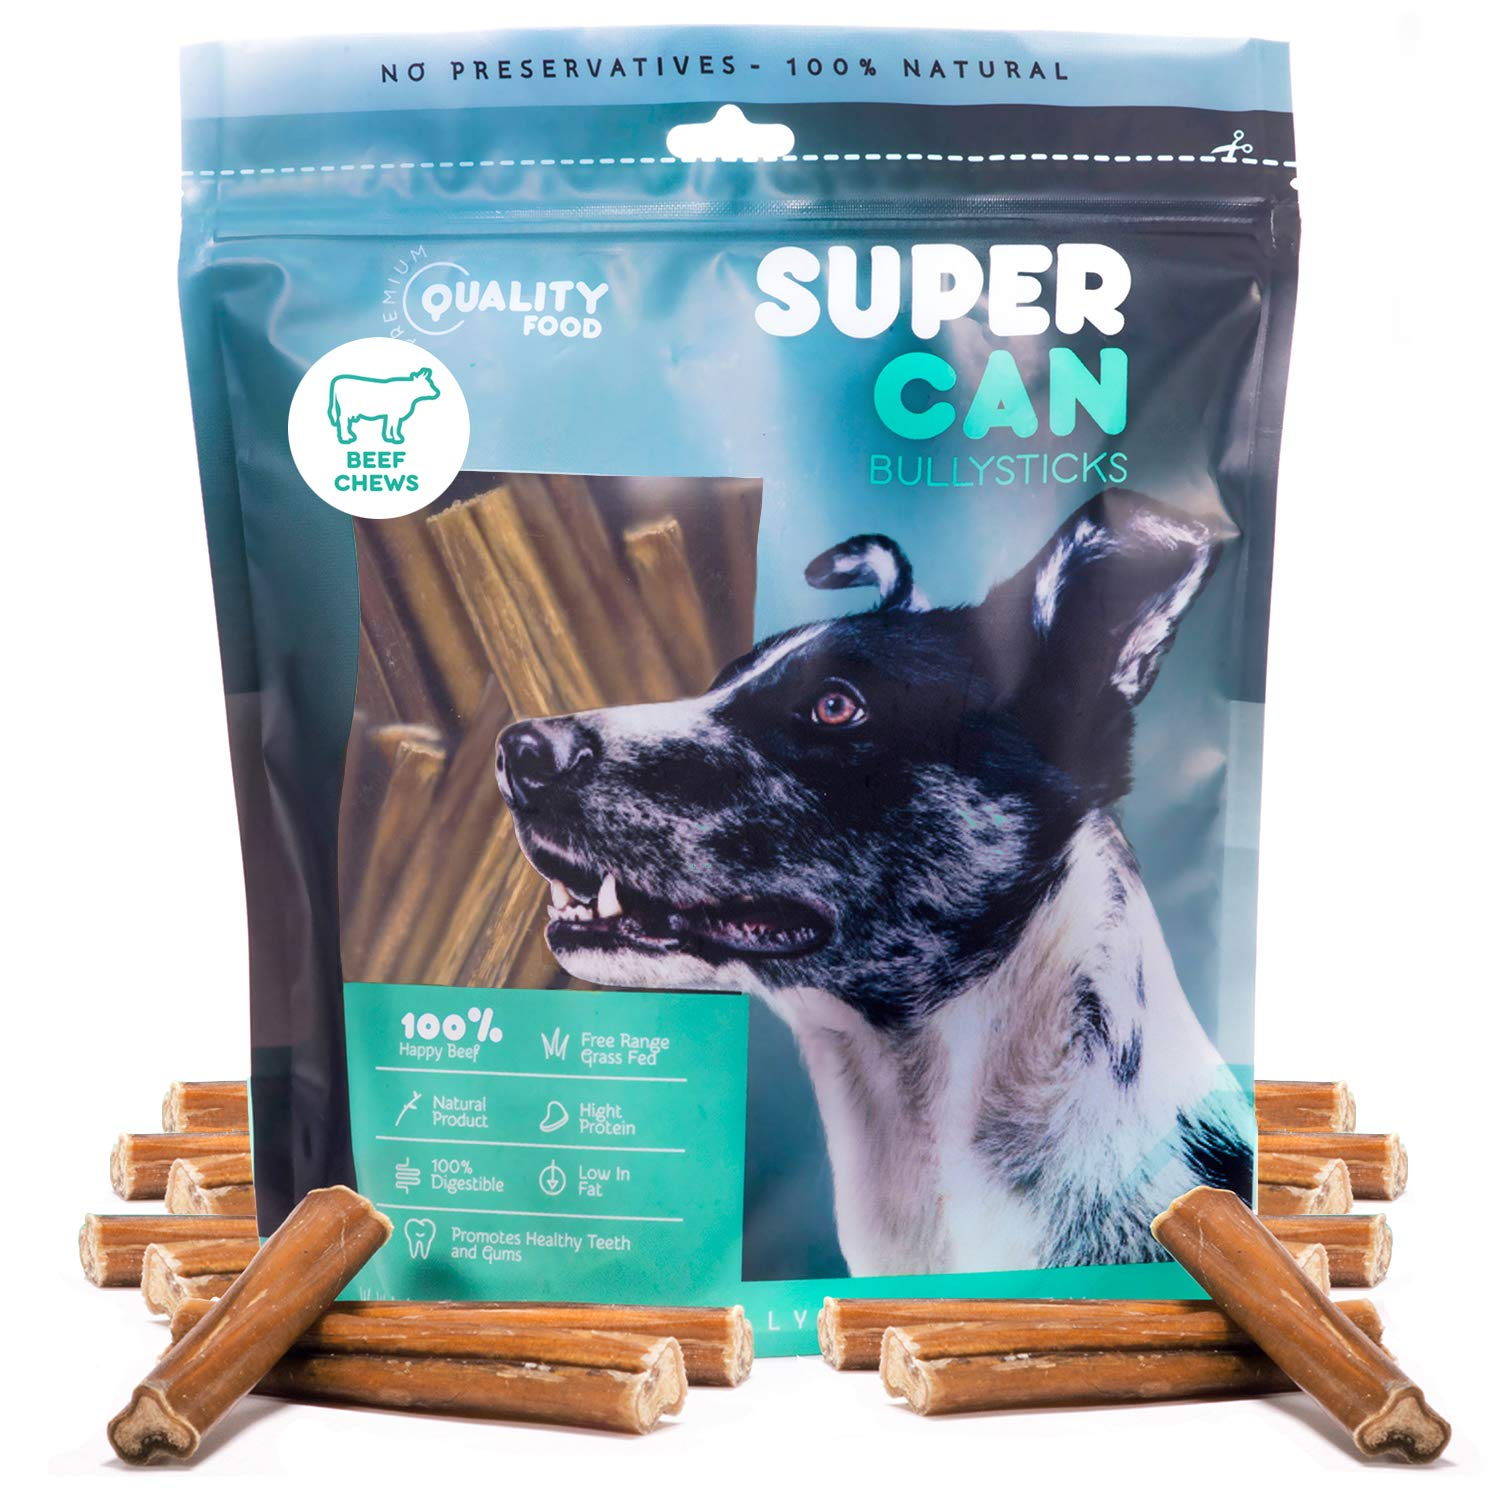 SUPER CAN BULLYSTICKS Premium 4-5 inch Bully Sticks [ 1 Lb ] 100% Natural Gourmet Treats and Chews for Dogs (40-50 Sticks)